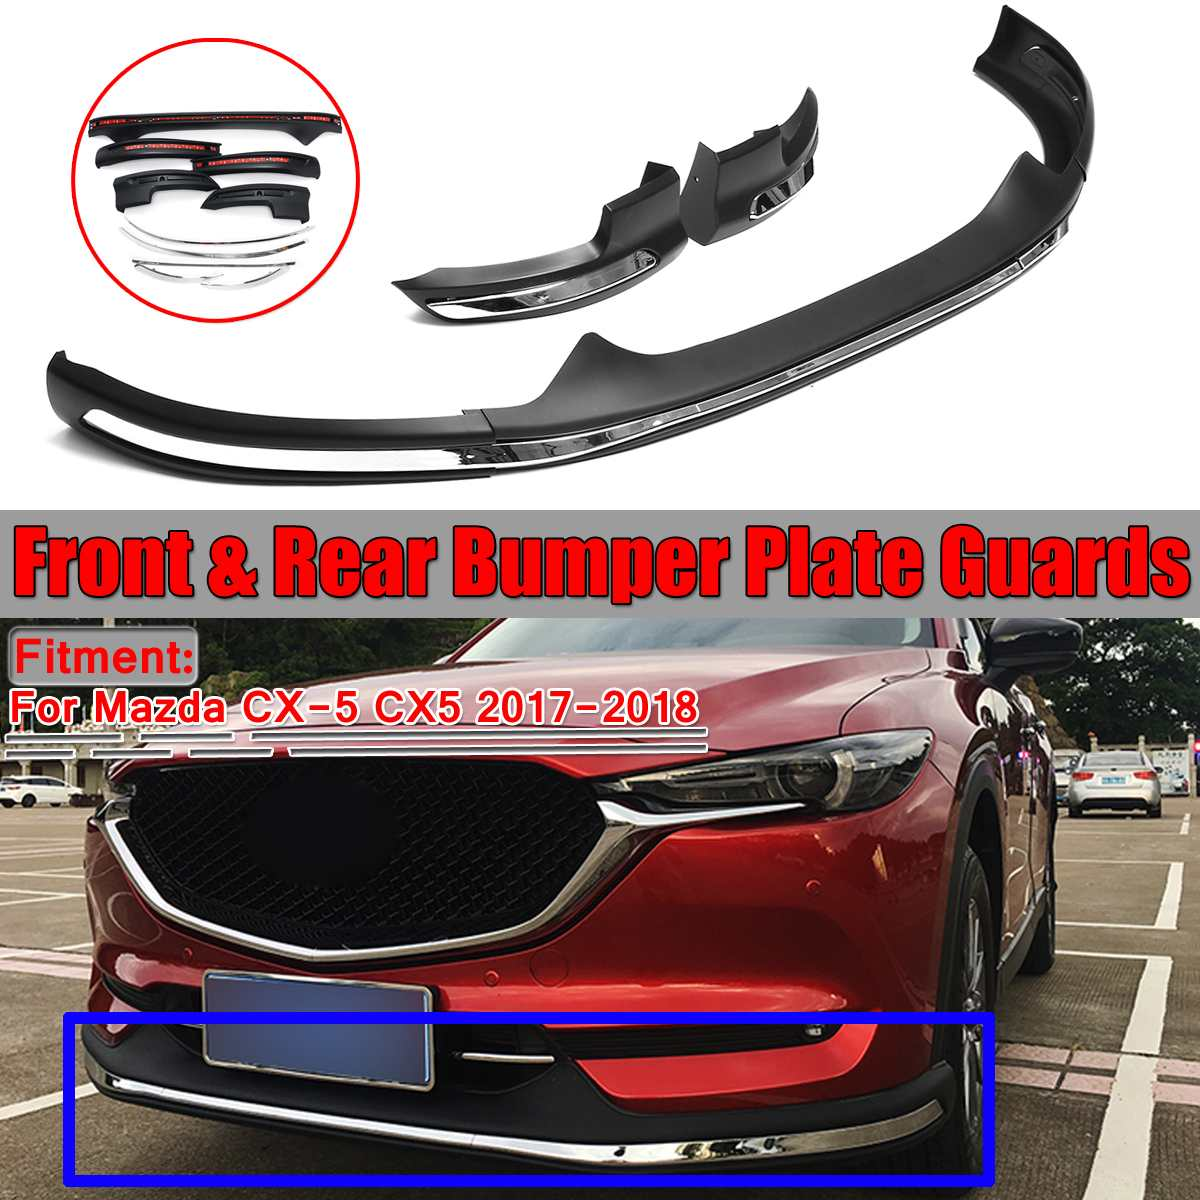 New Car Front Rear <font><b>Bumper</b></font> Board Guard Skid Plate Bar Protector For <font><b>Mazda</b></font> CX-5 <font><b>CX5</b></font> 2017 <font><b>2018</b></font> Silver 2PCS Back + 1 PC Front image